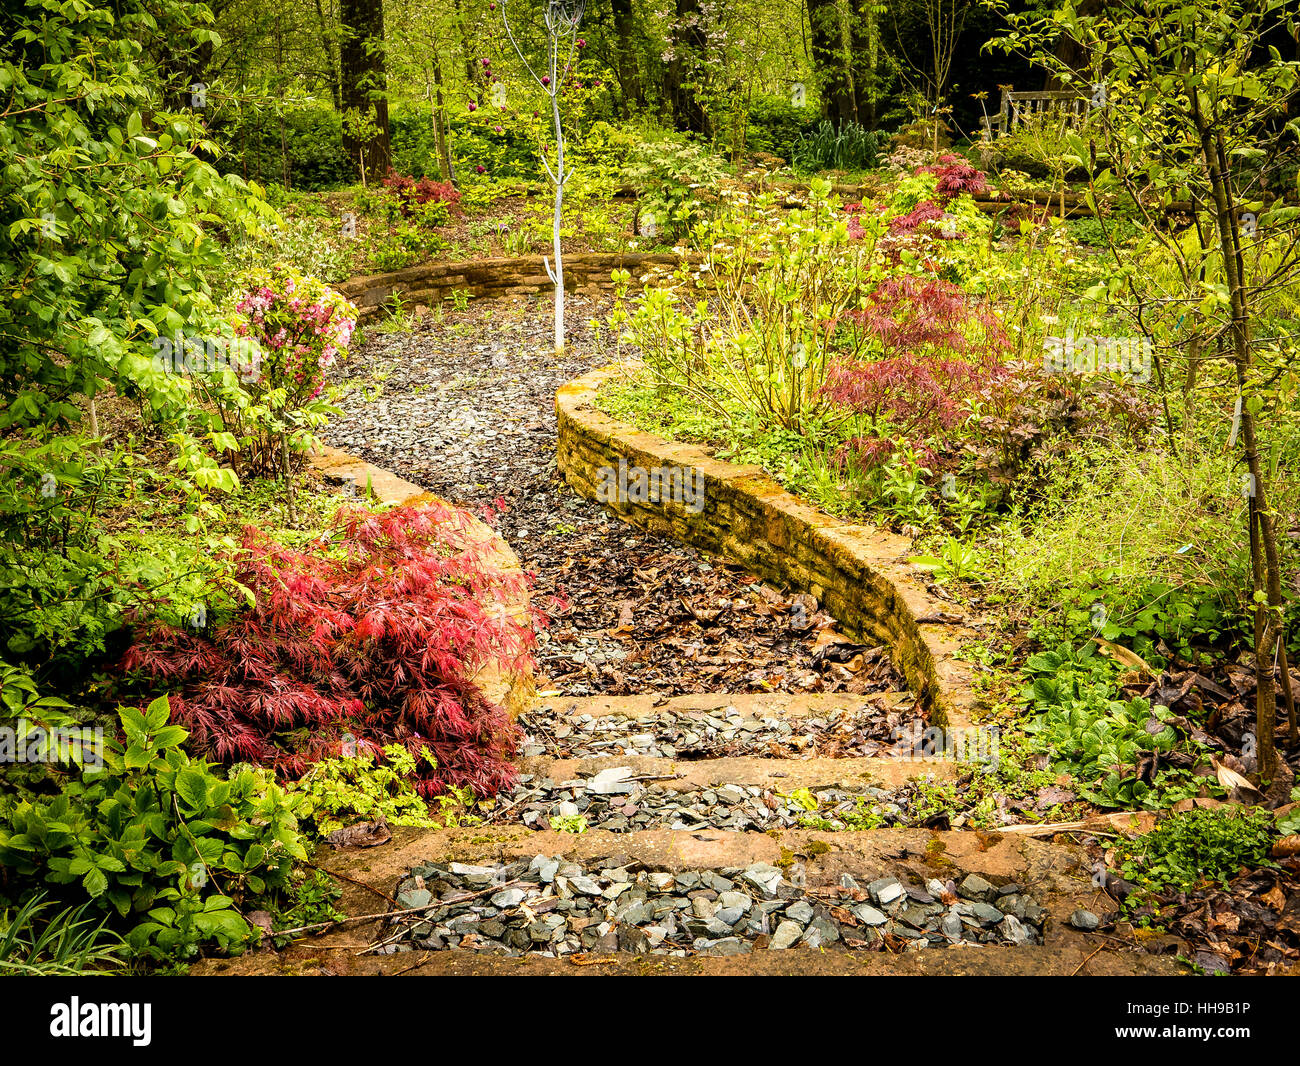 Steps into a small dell in a verdant damp private woodland garden in Herefordshire UK - Stock Image